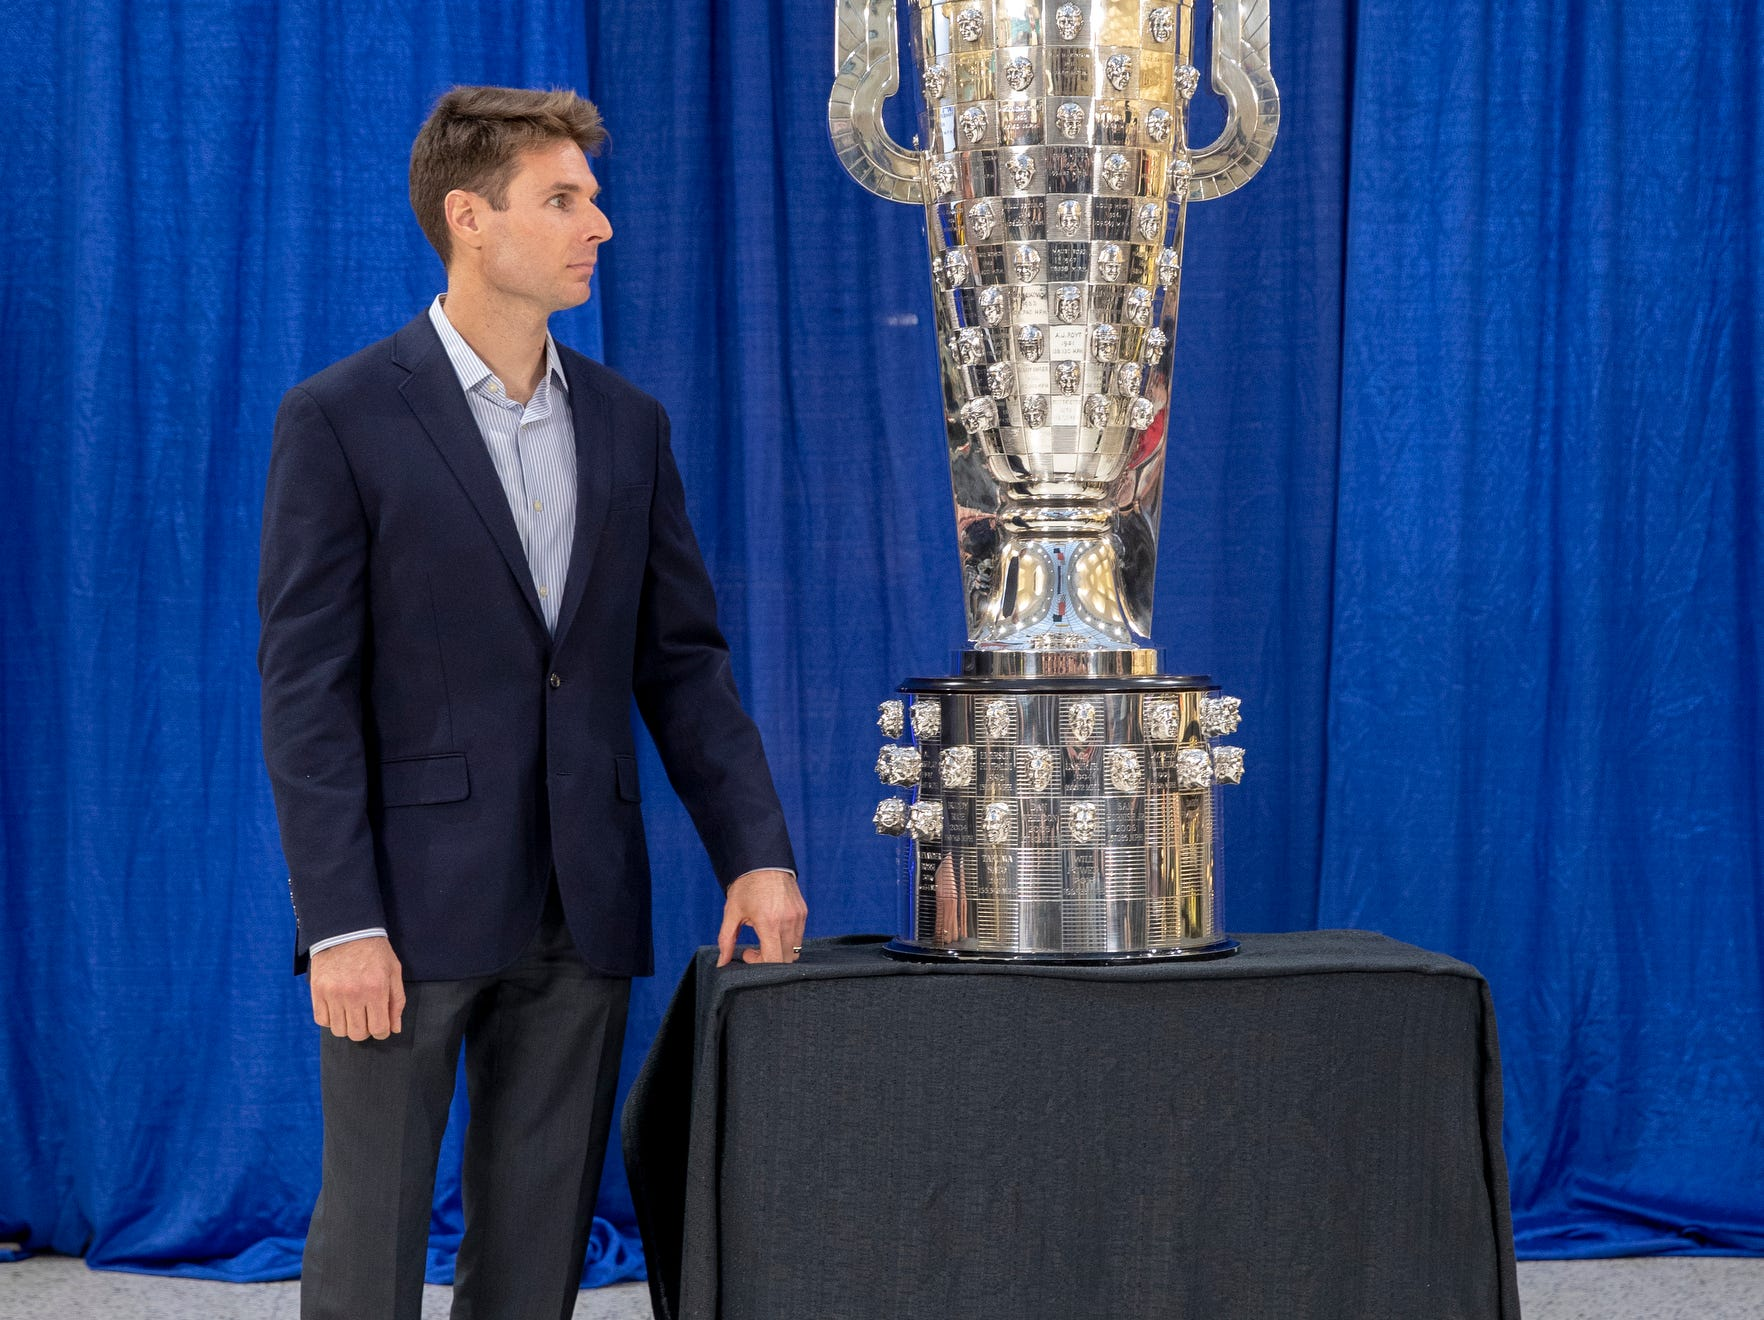 Will Power poses for photographers' cameras after his likeness was unveiled on the BorgWarner trophy, Indianapolis Motor Speedway, Wednesday, Dec. 5, 2018. Power is an Australian driver with Team Penske, and is the 105th face on the trophy.